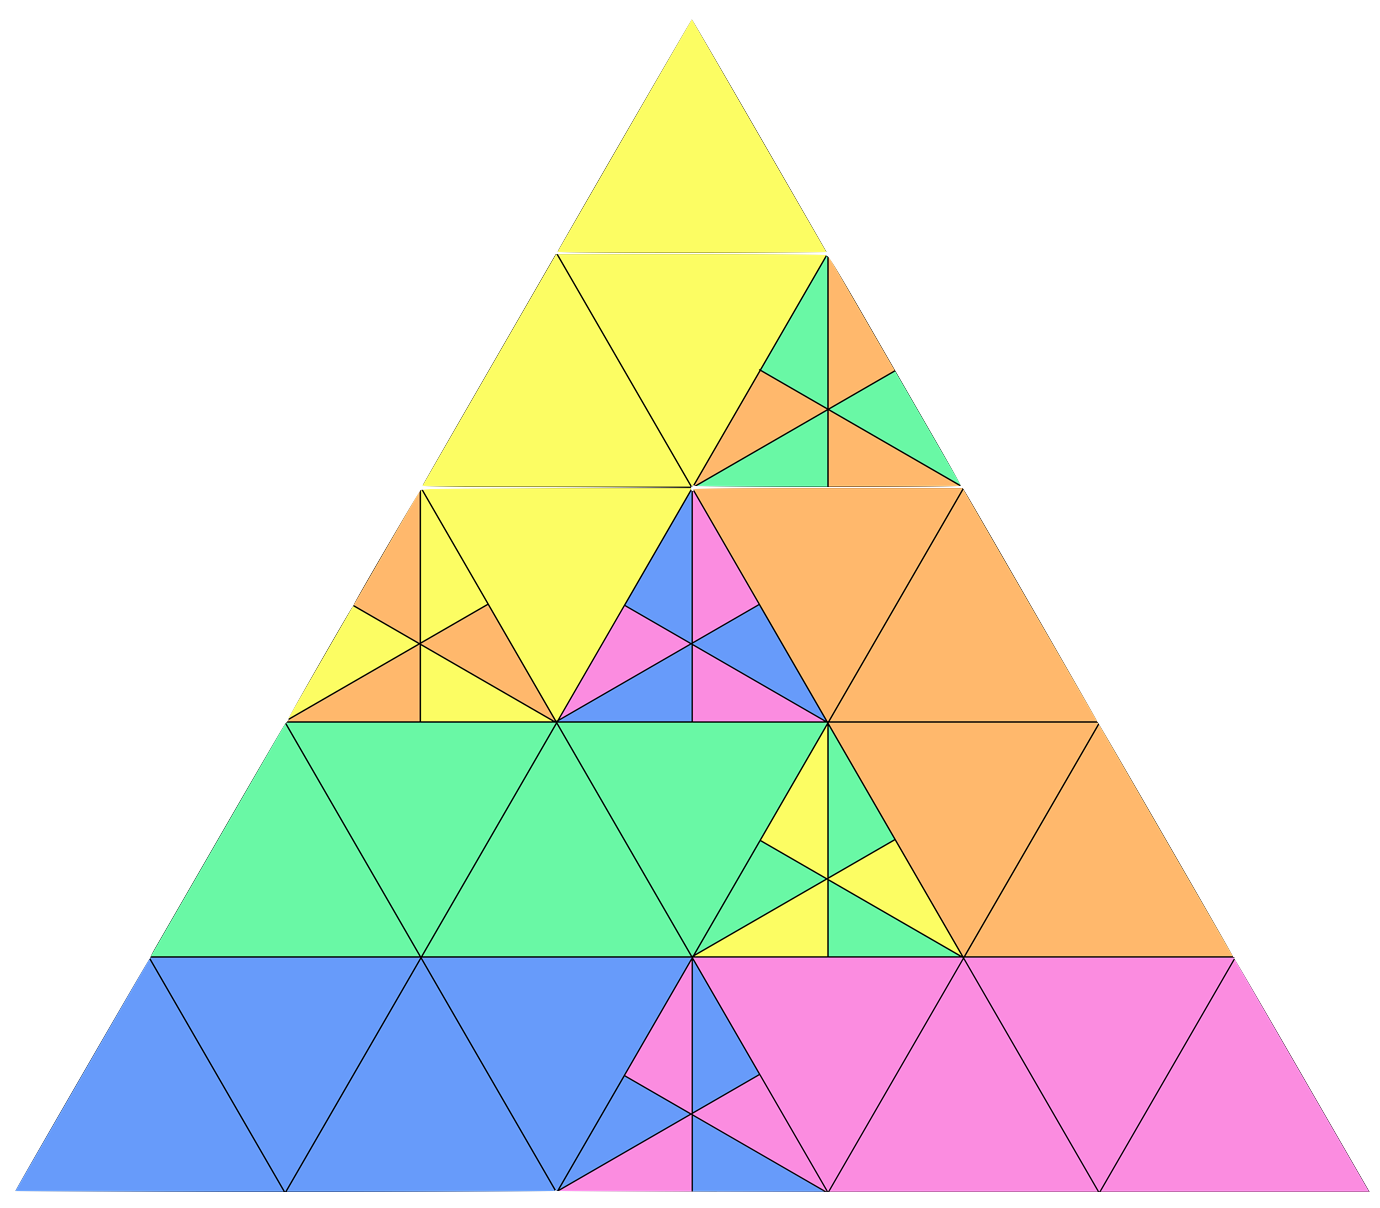 It's easy to divide an equilateral triangle into n^2